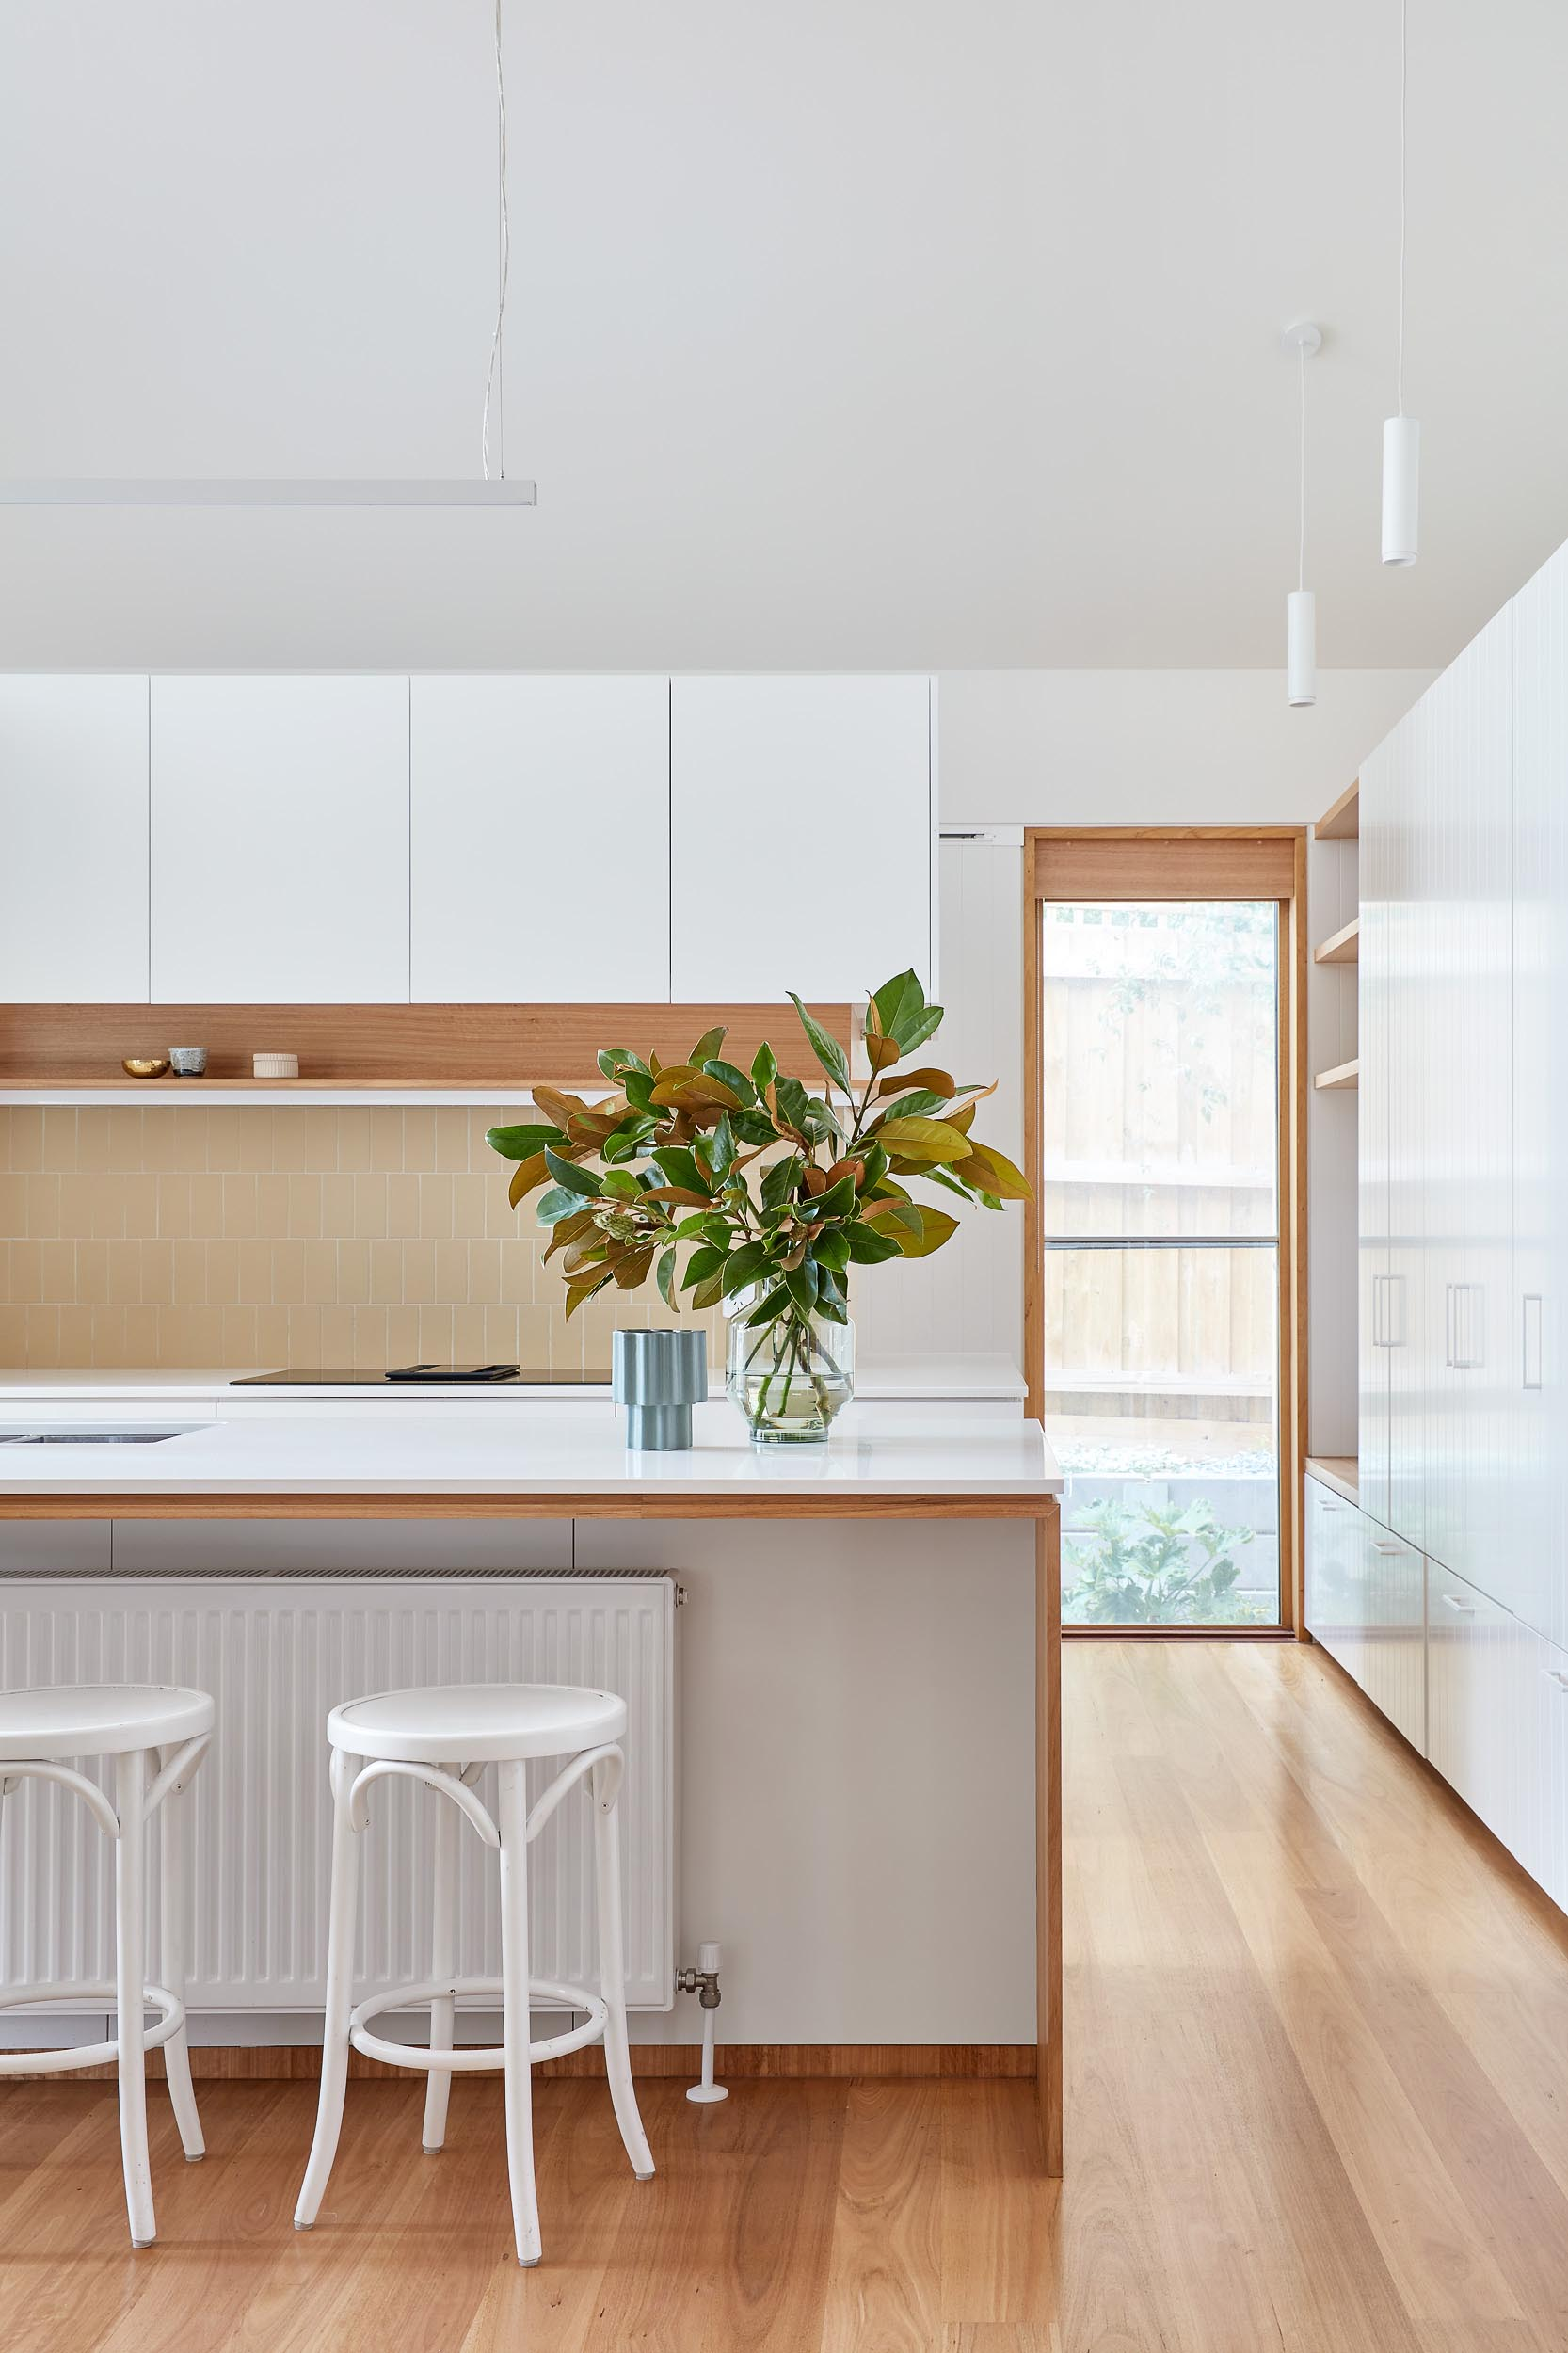 In this modern kitchen, minimalist white cabinets are complemented by the Glacier White Corian countertops and Blackbutt Timber accents.